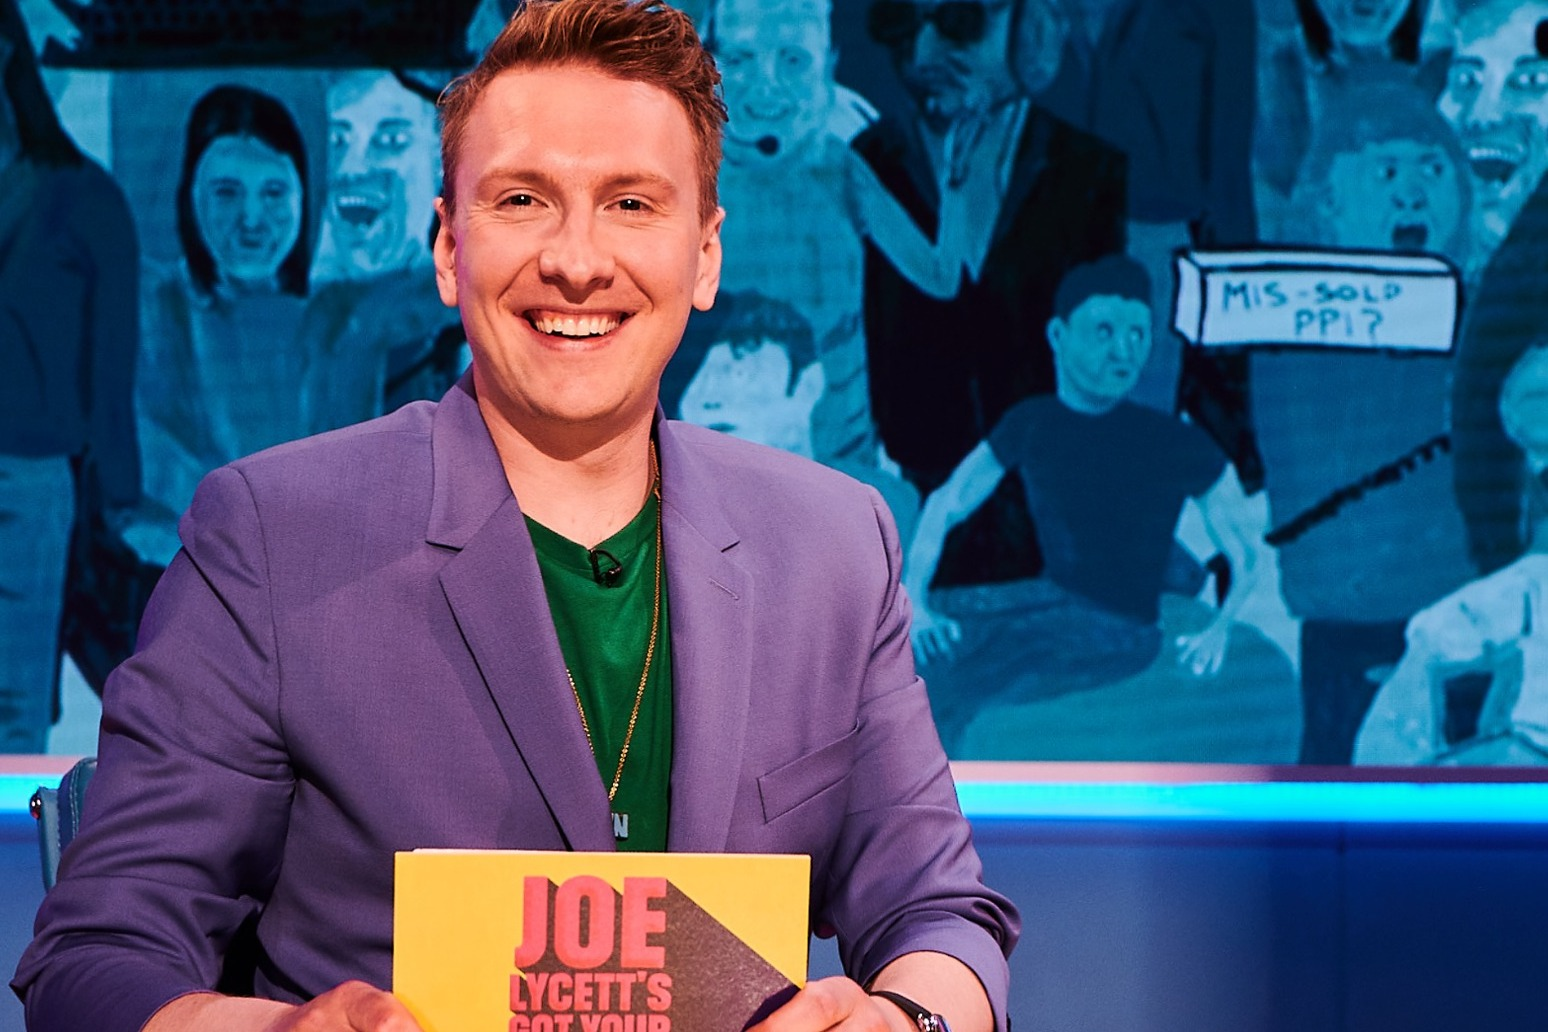 Joe Lycett hails victory in fight against single-use plastic